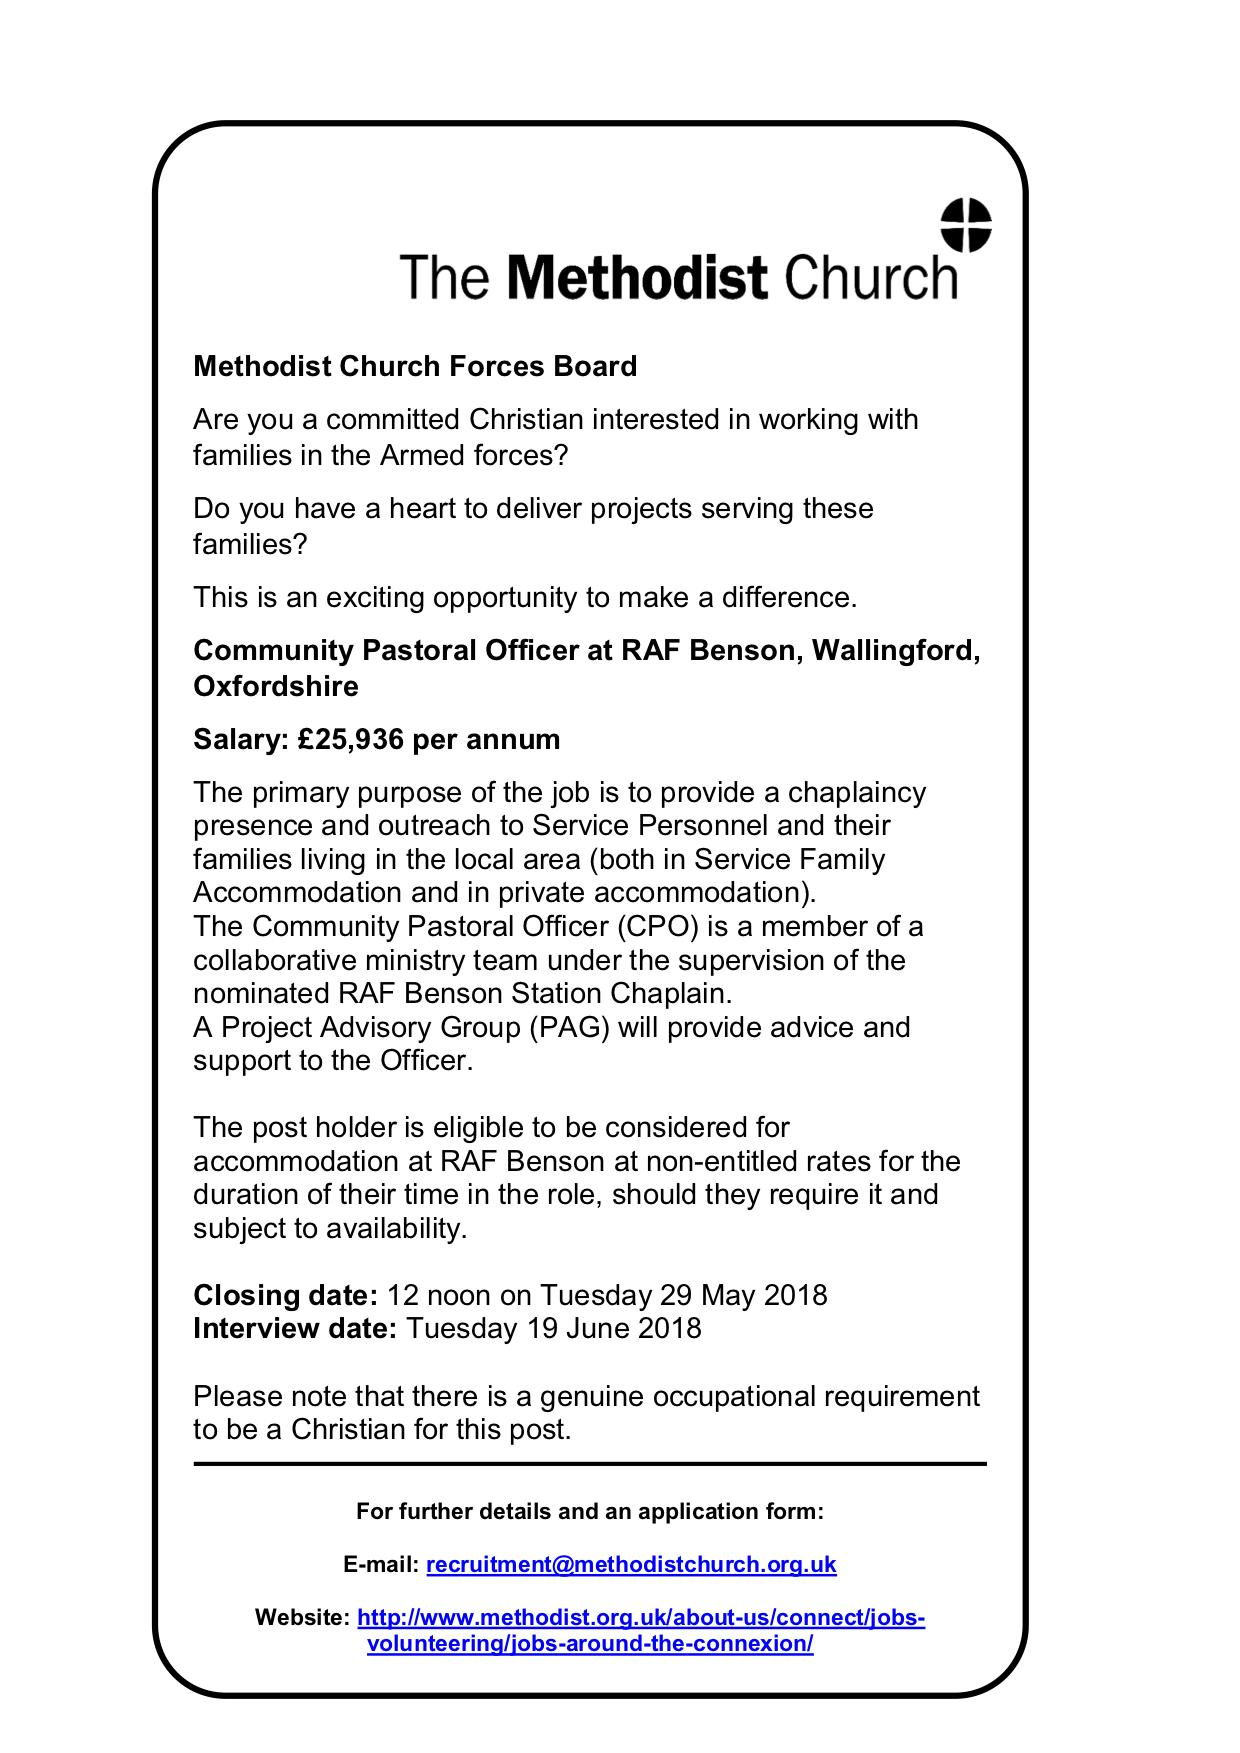 180509 RAF Benson Community Pastoral Officer Advert